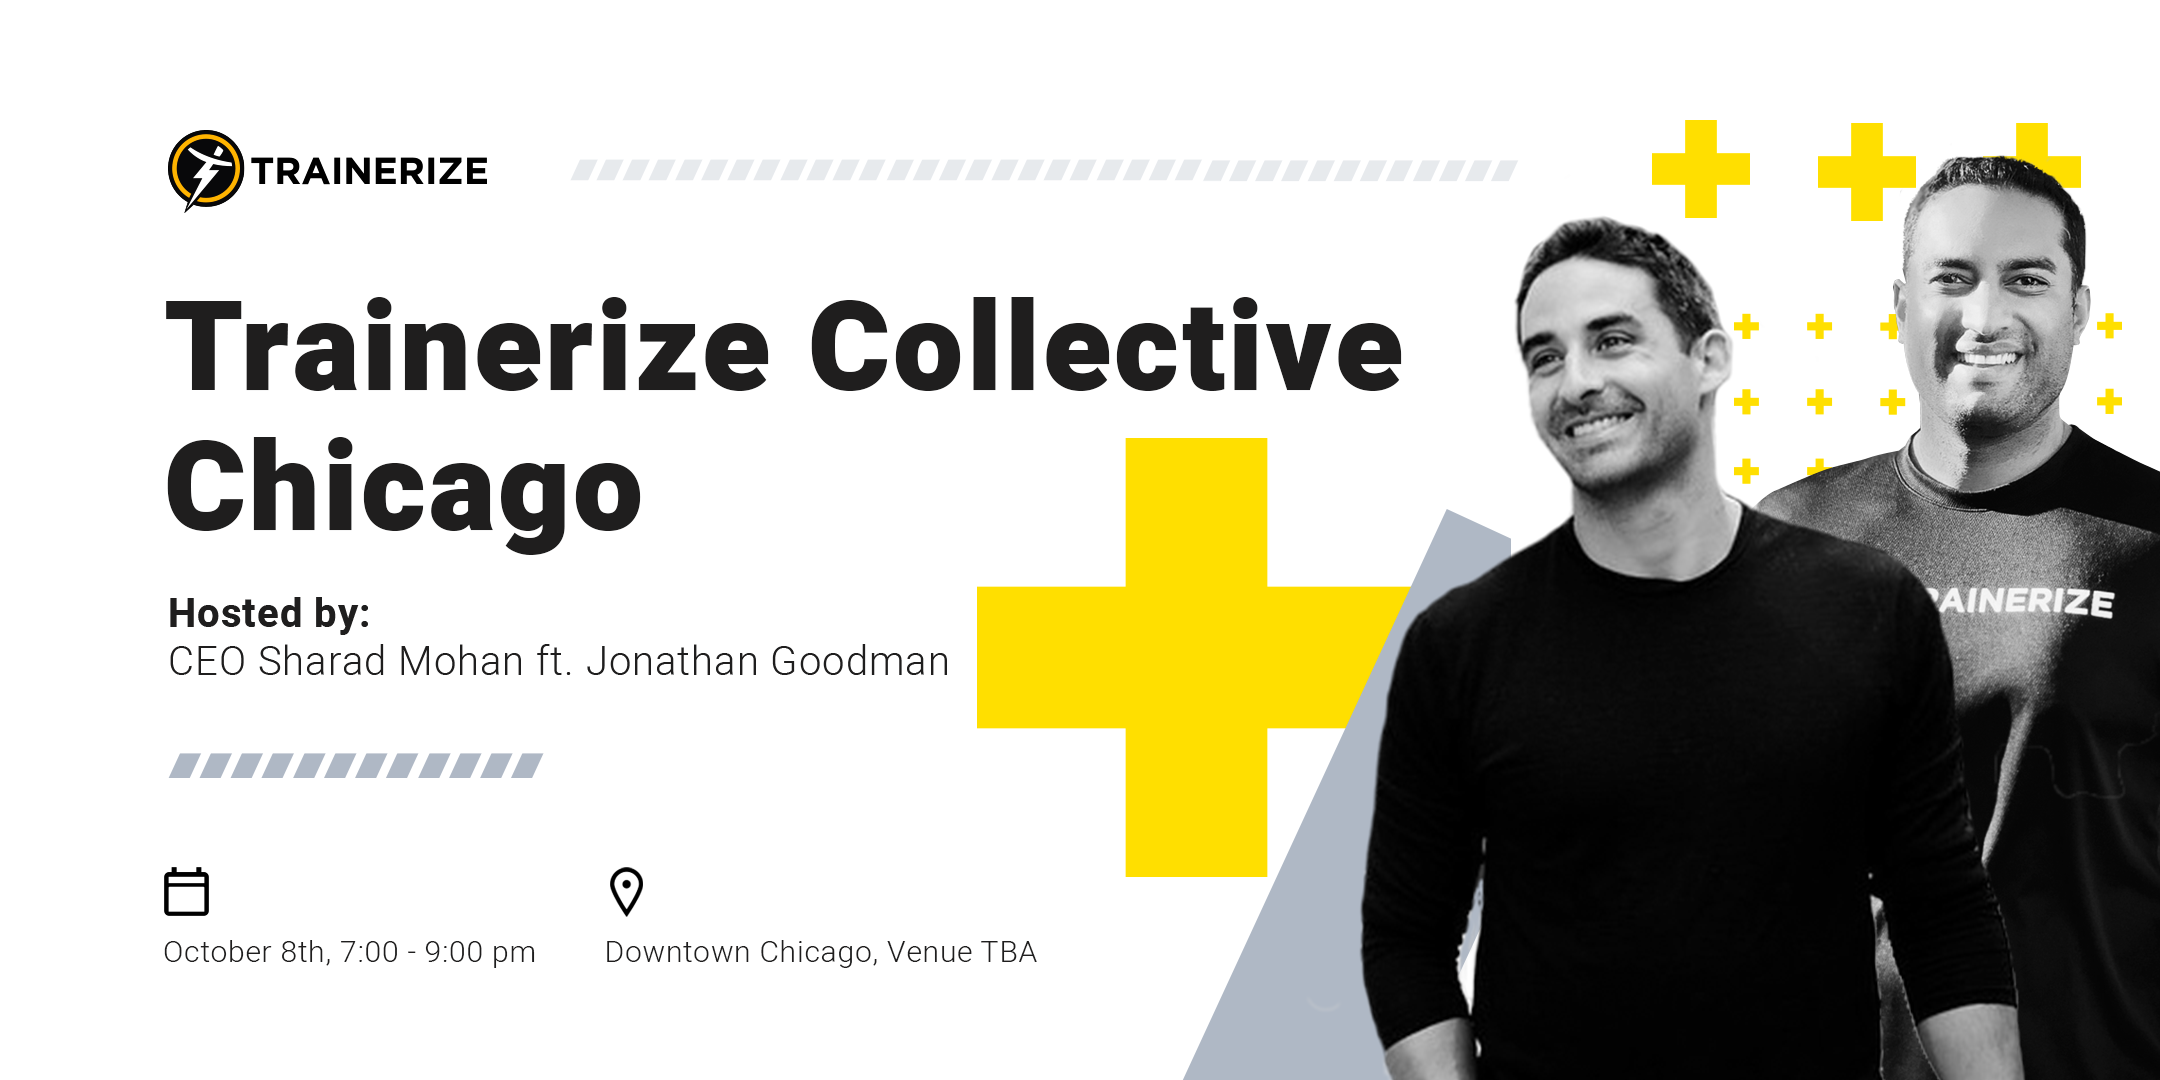 Join Trainerize CEO Sharad Mohan and industry expert Jonathan Goodman at Trainerize Collective Chicago